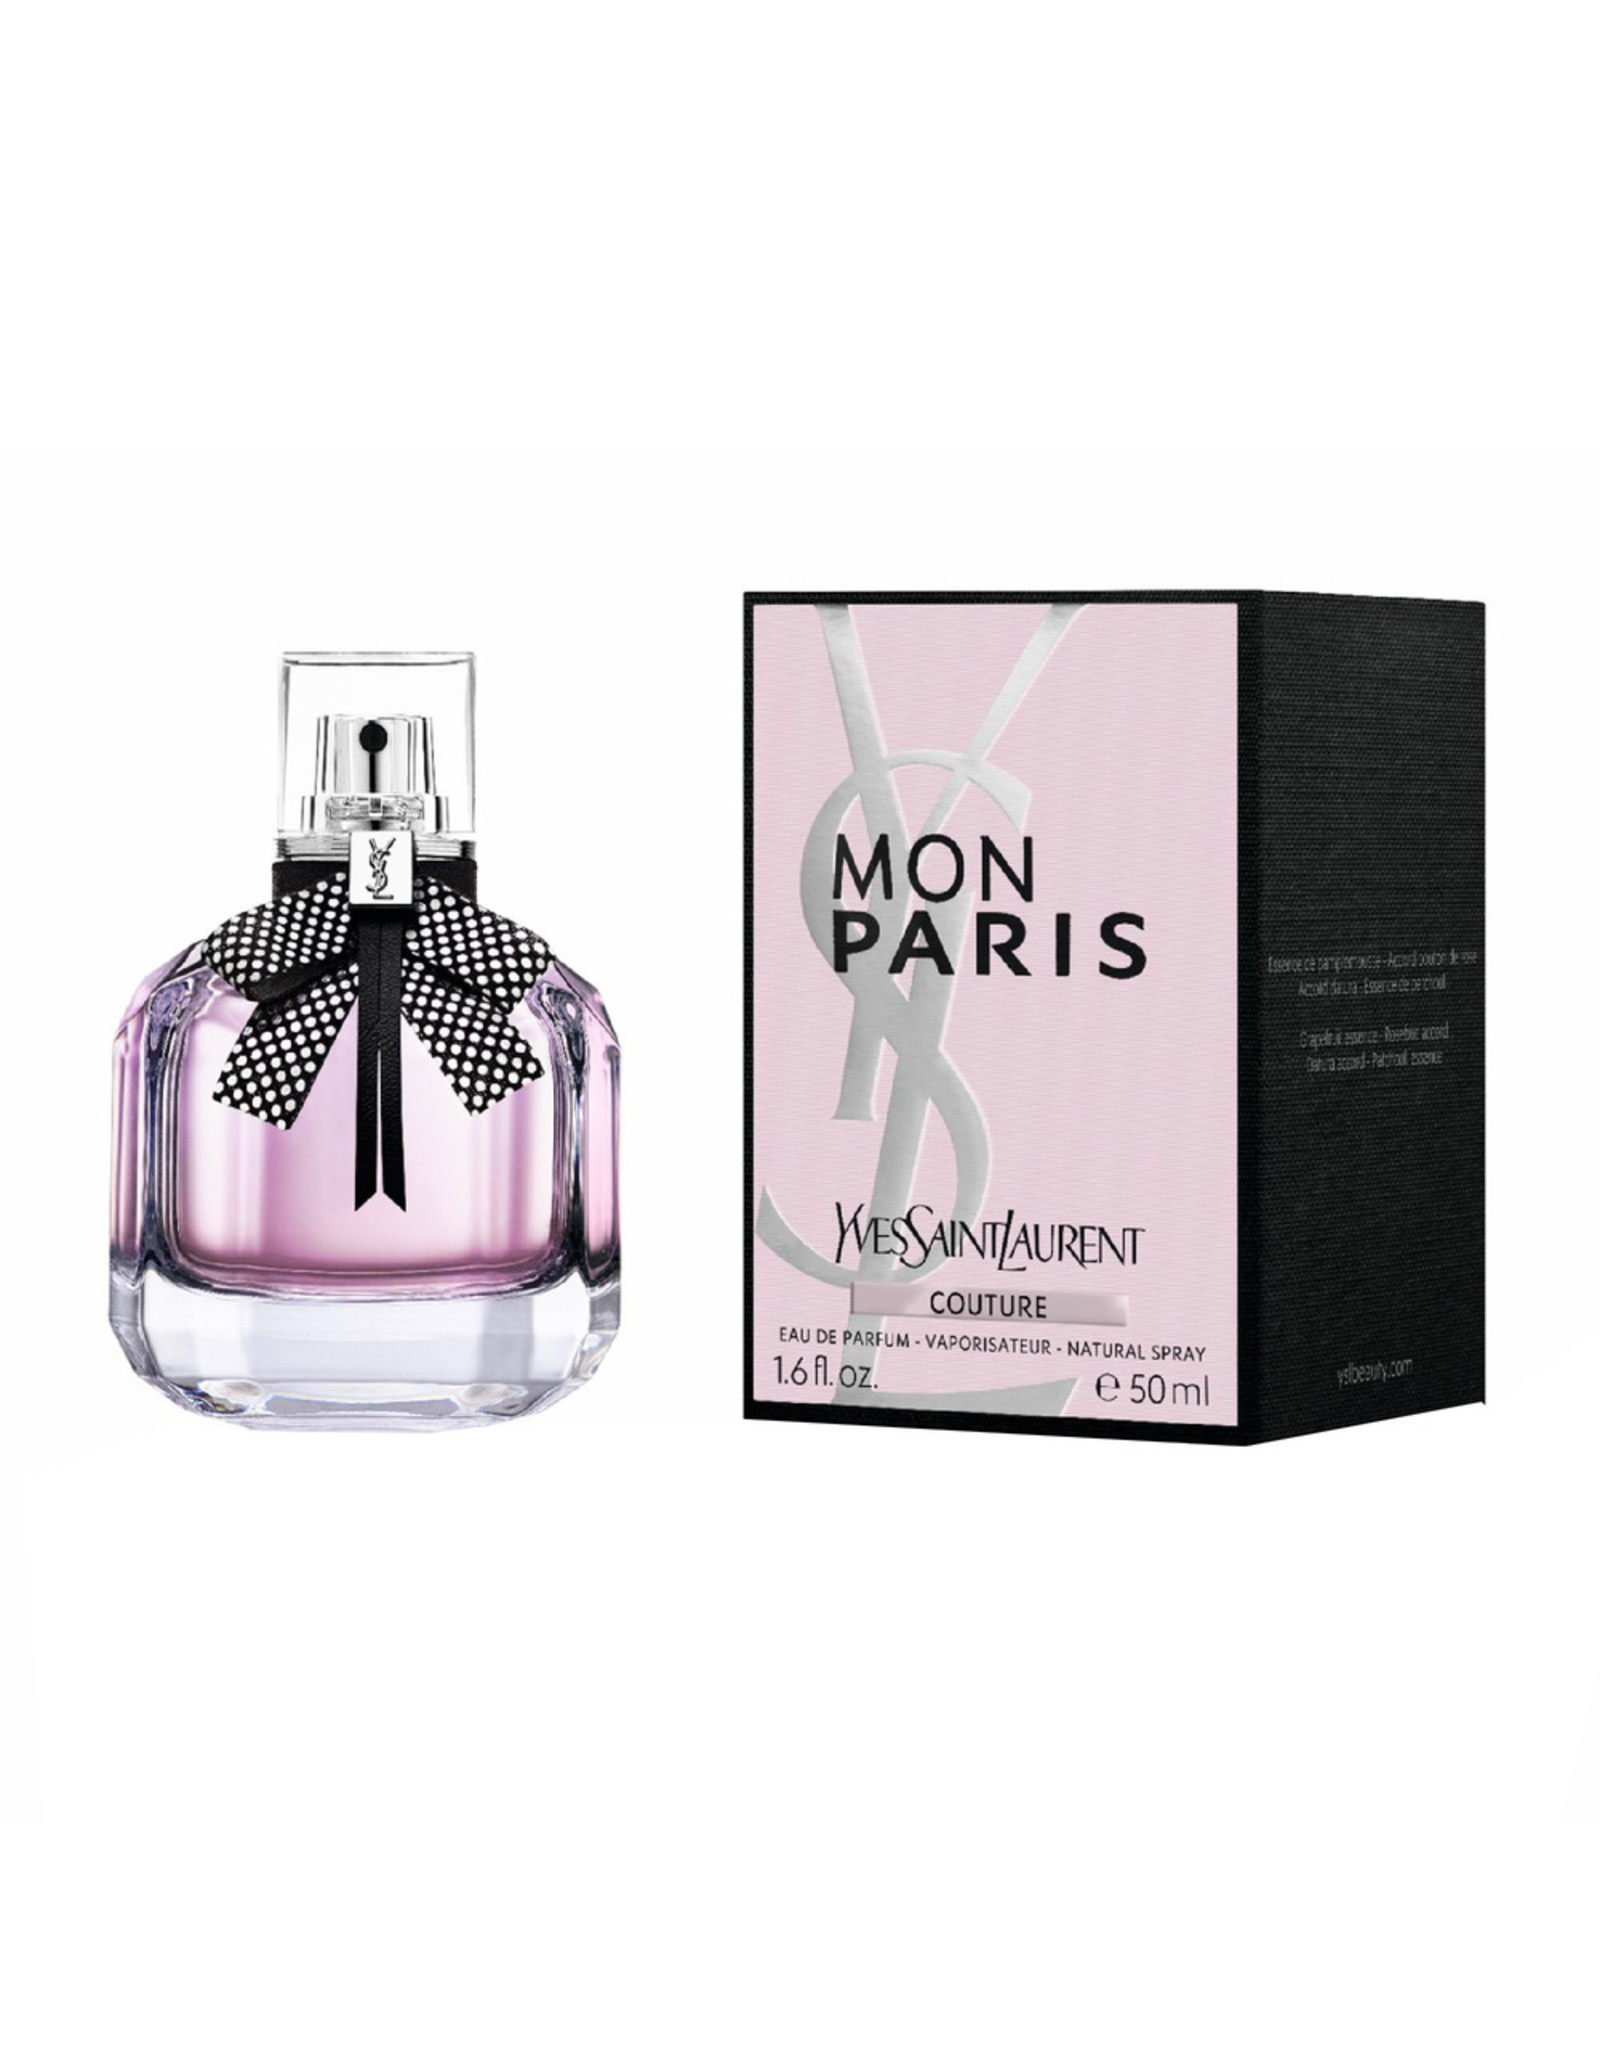 YVES SAINT LAURENT YVES SAINT LAURENT MON PARIS COUTURE